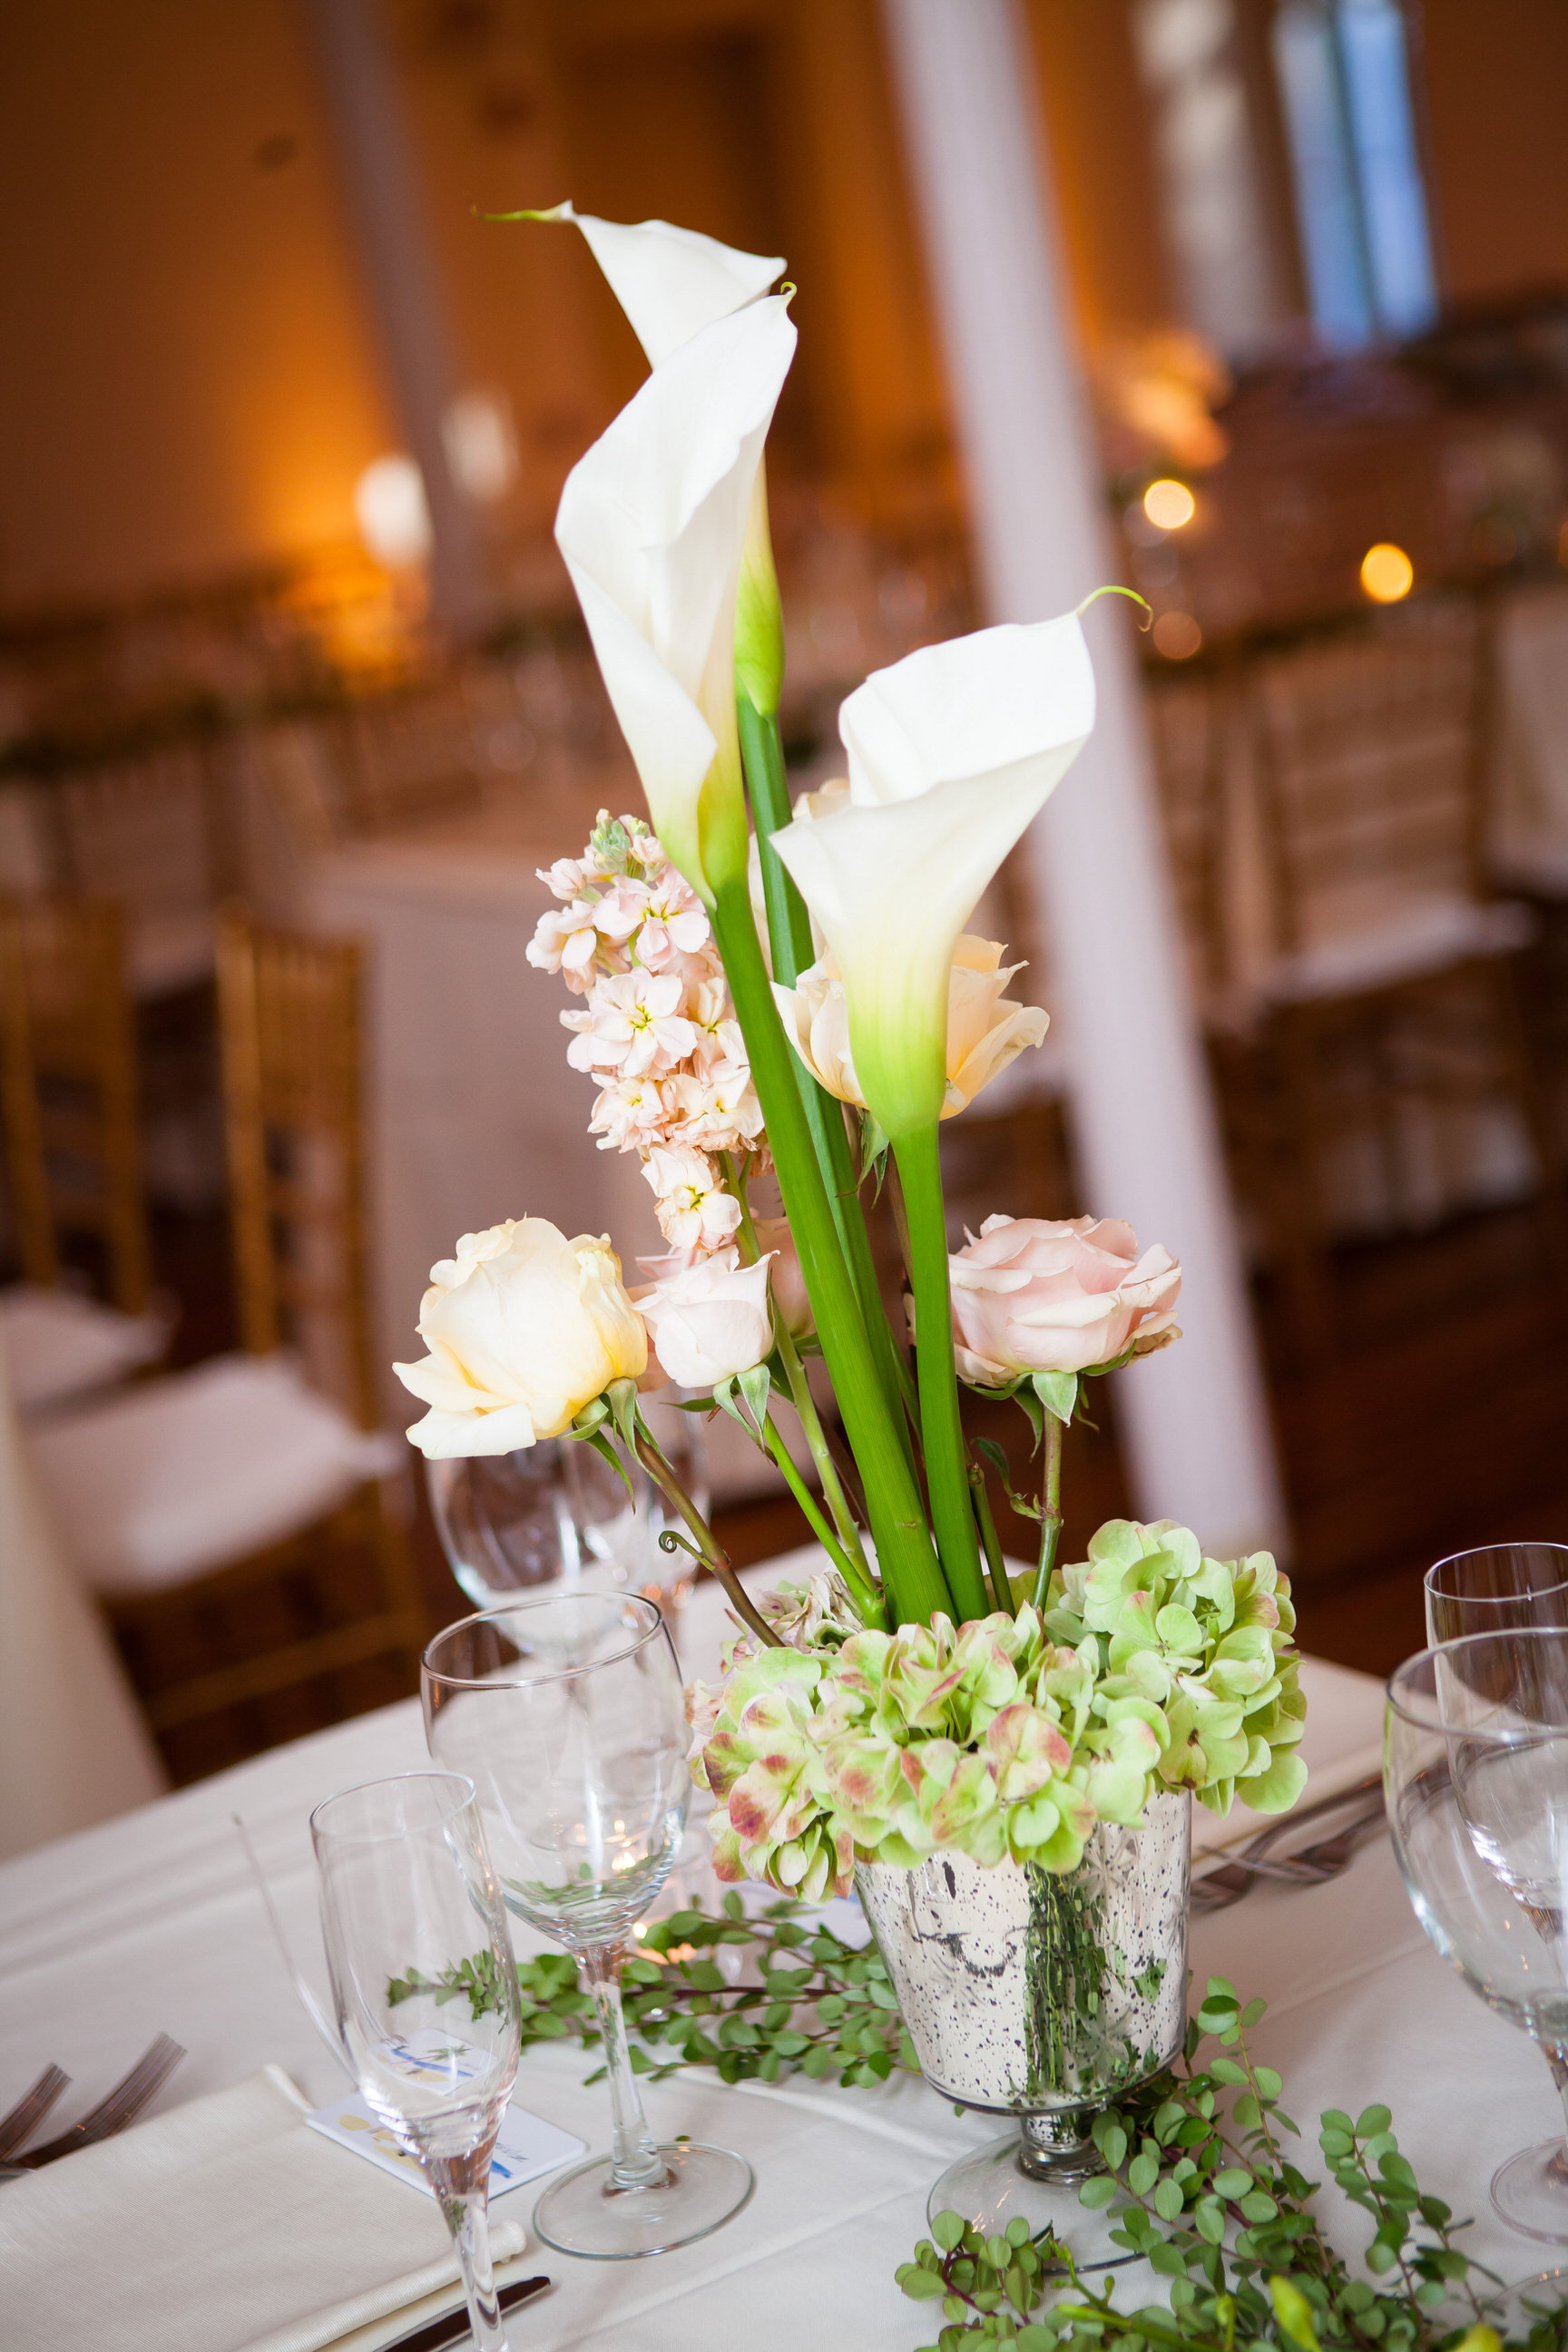 70 White Calla Lily Pink Rose Green Hydrangea Mercury Glass Centerpiece Historic Yellow Springs.jpg